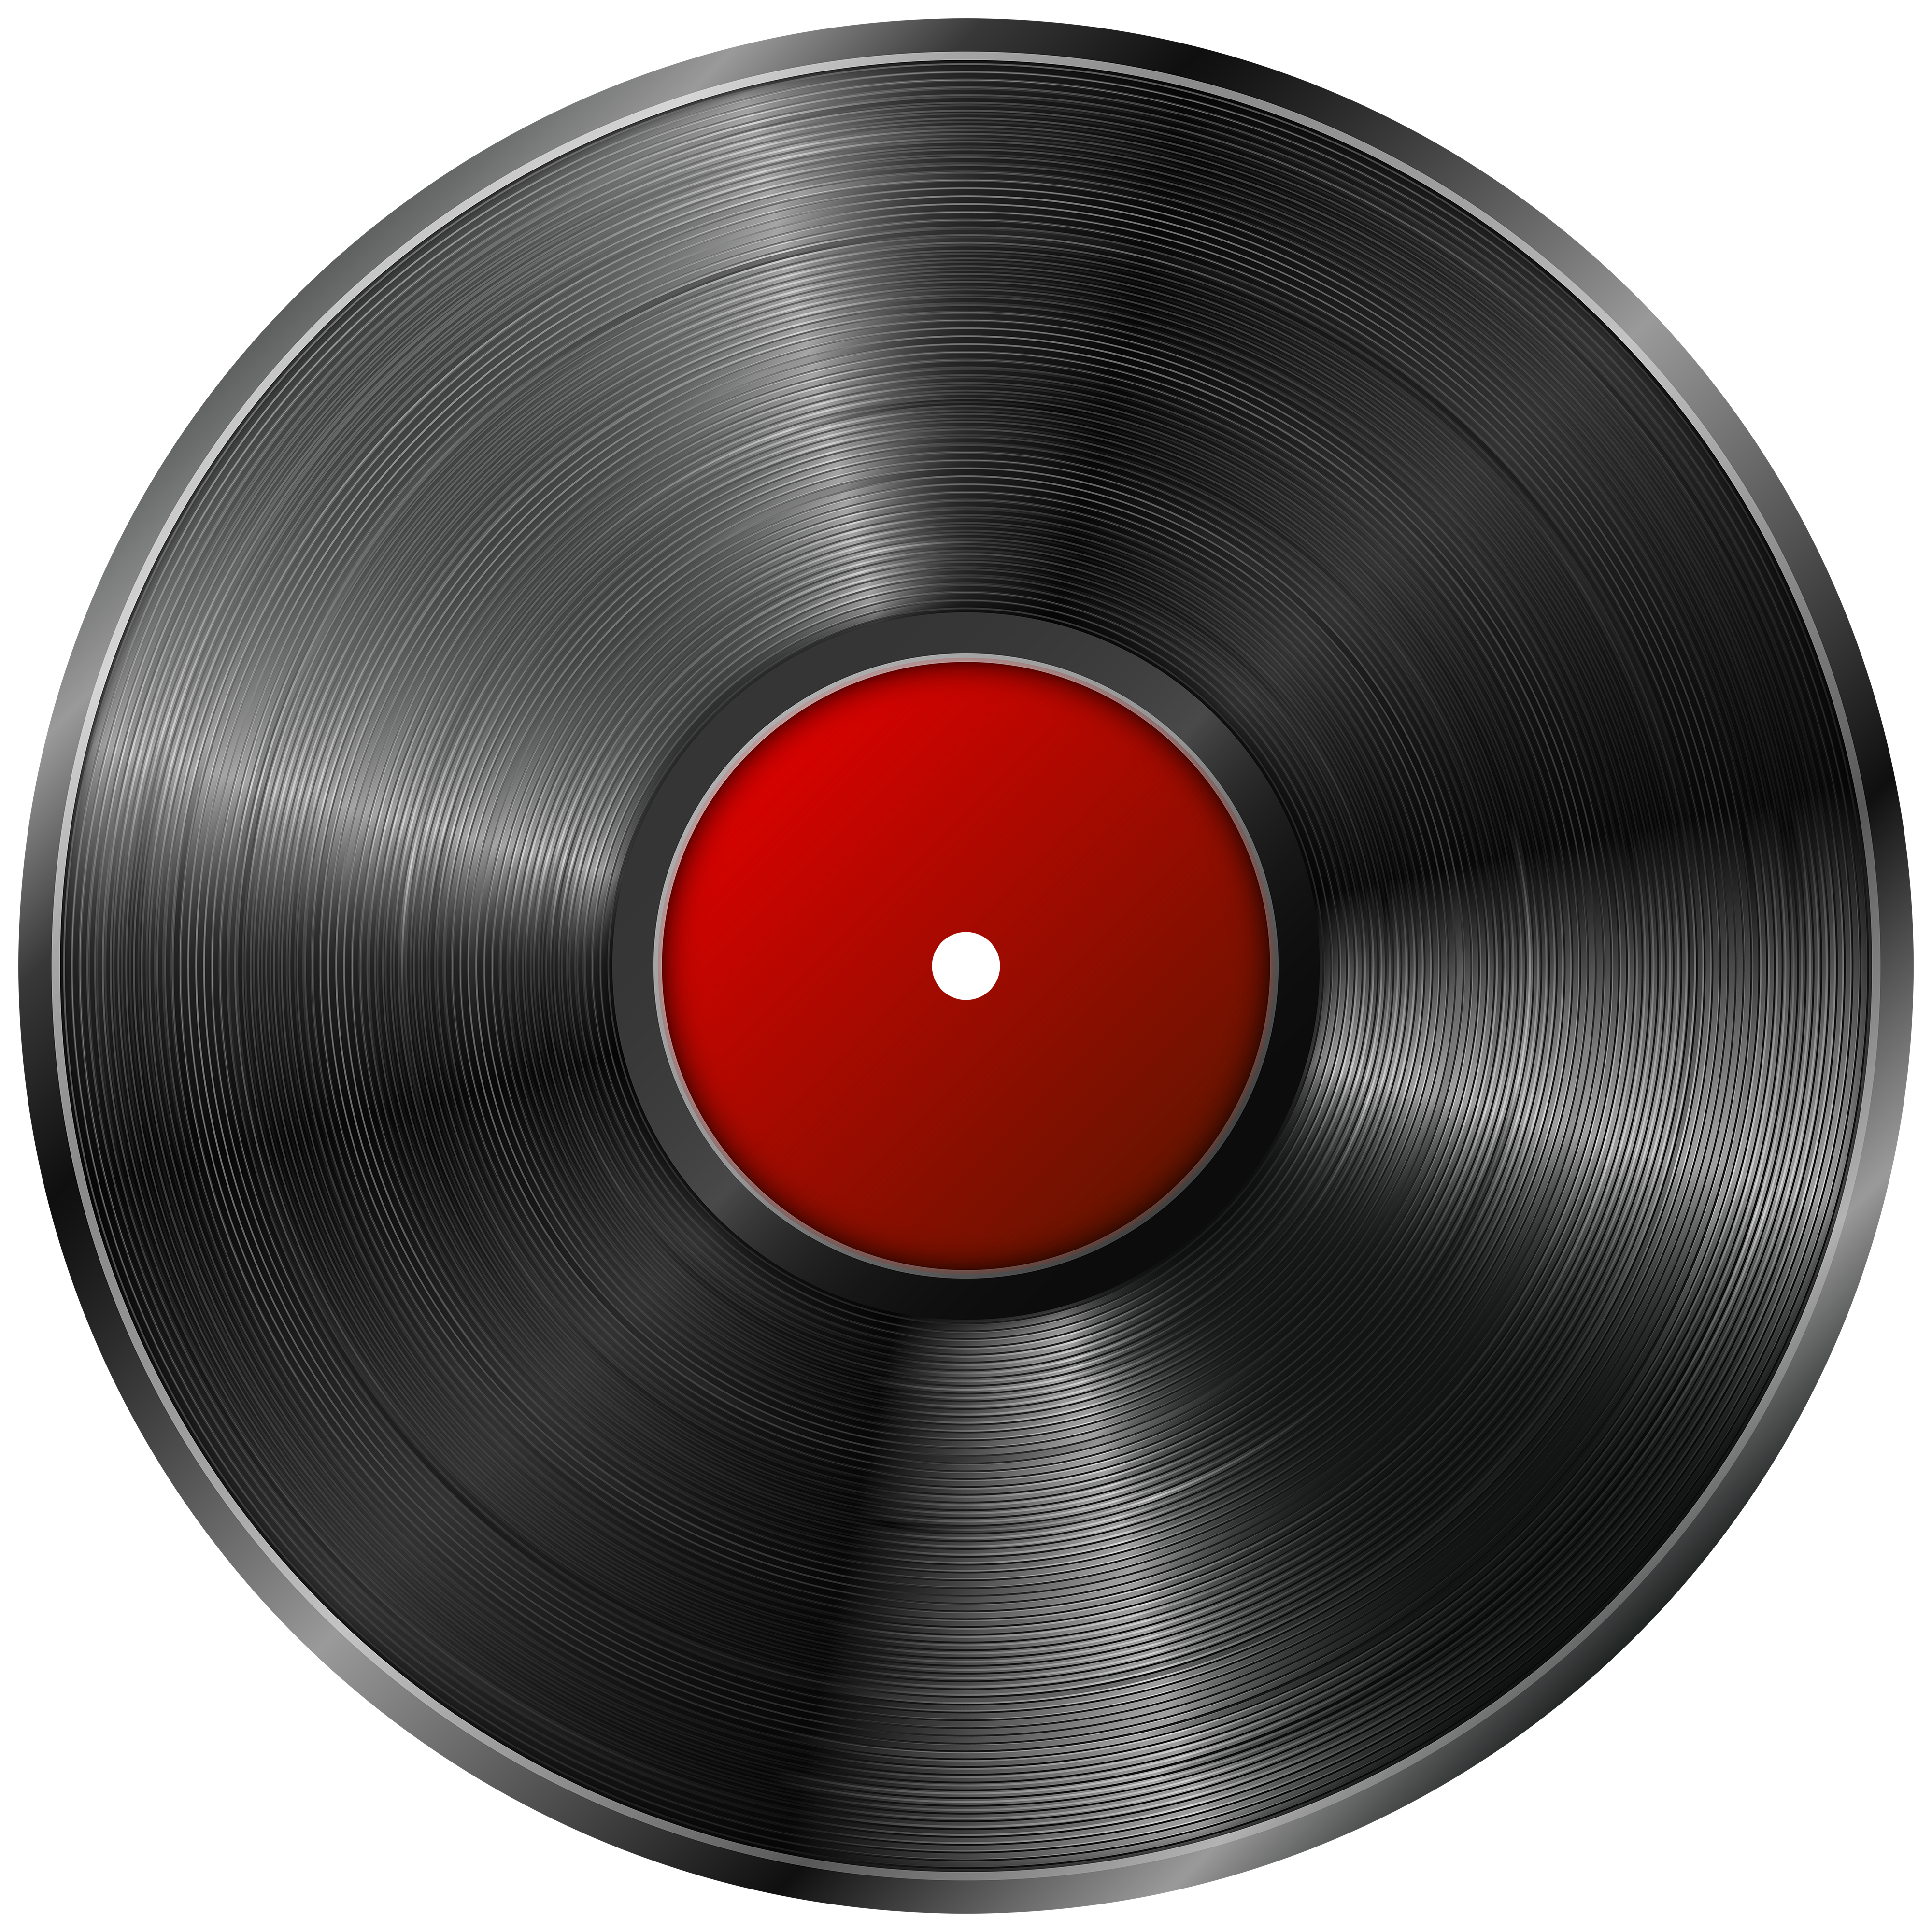 Gramophone vinyl lp png. Record clipart picture freeuse download